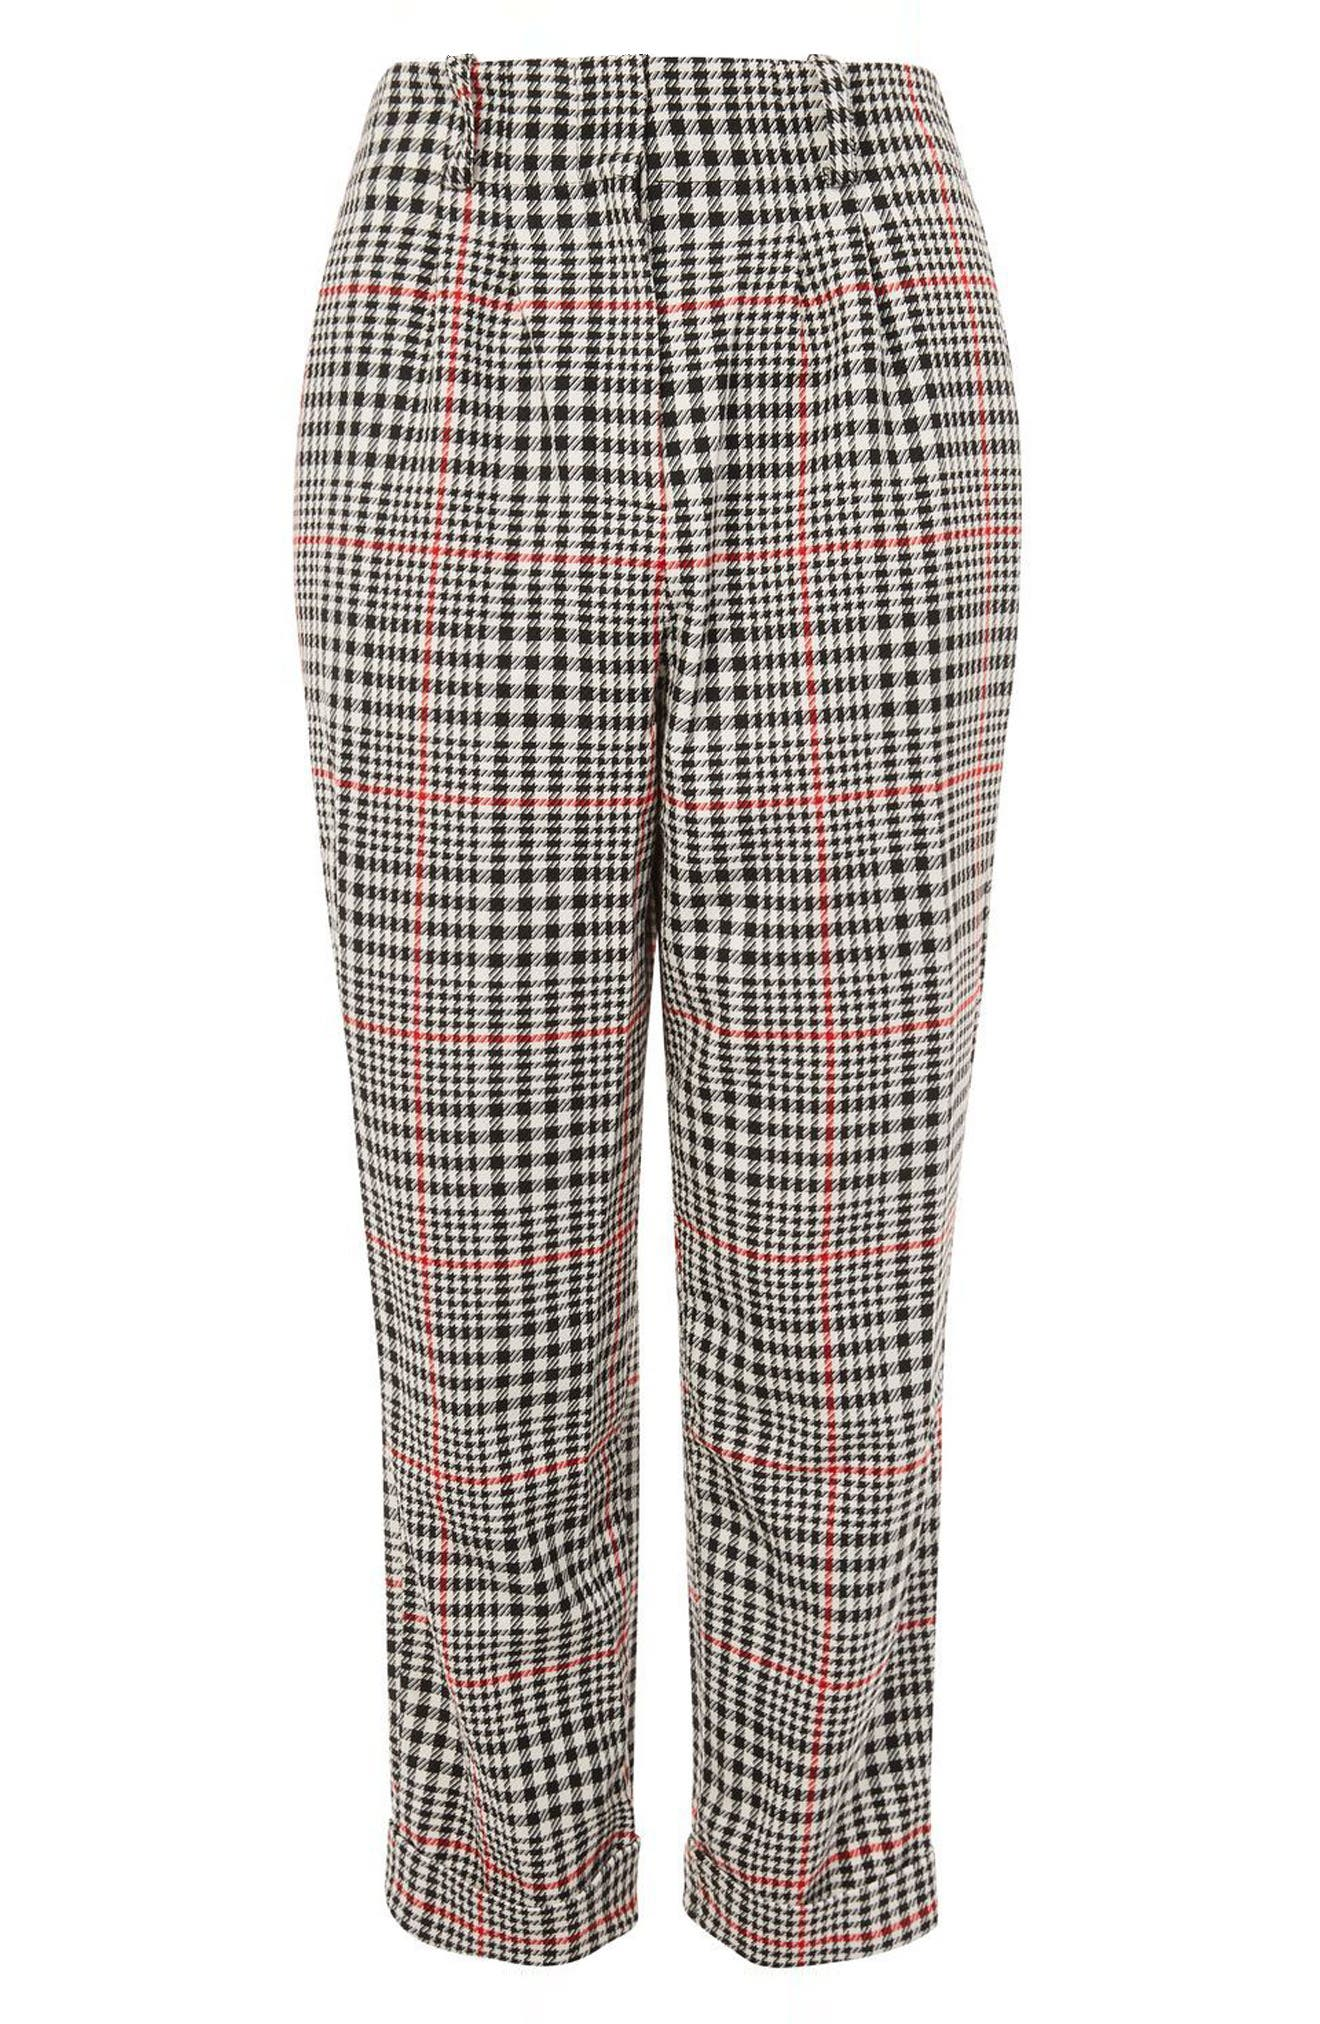 Red Pop Check High Waist Mensy Trousers,                             Alternate thumbnail 5, color,                             Black Multi